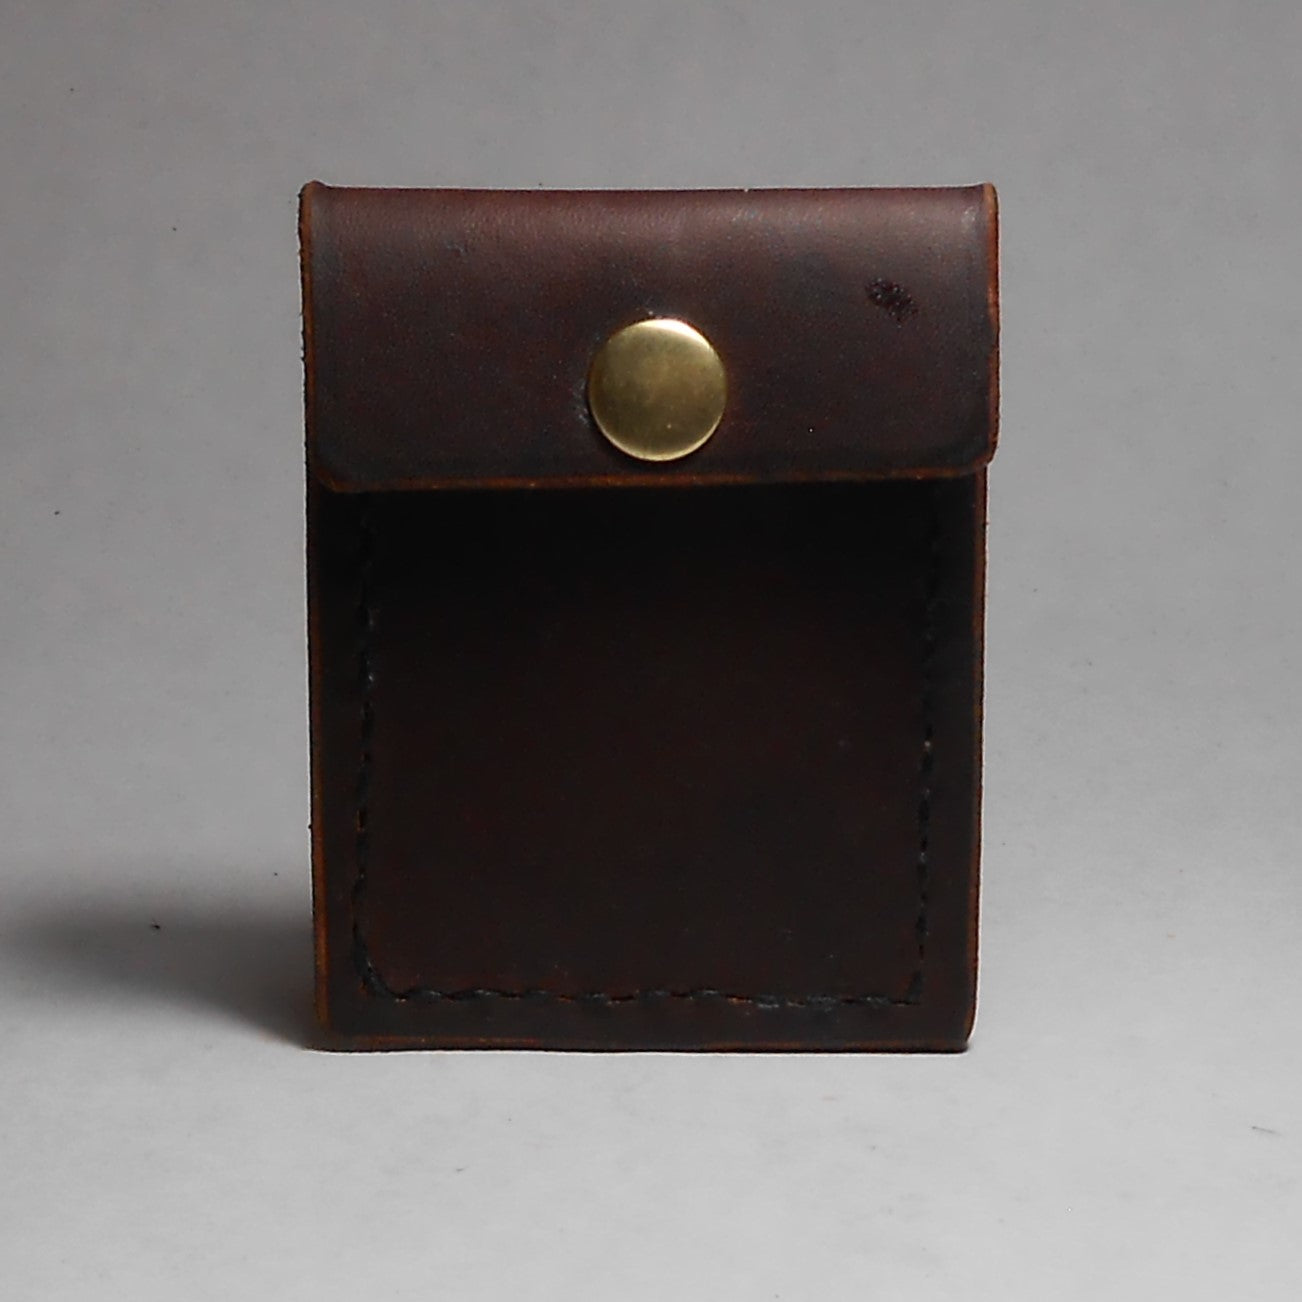 W2M | 1 Card Minimalist Wallet-Brown - Shock and Awl Leatherwork